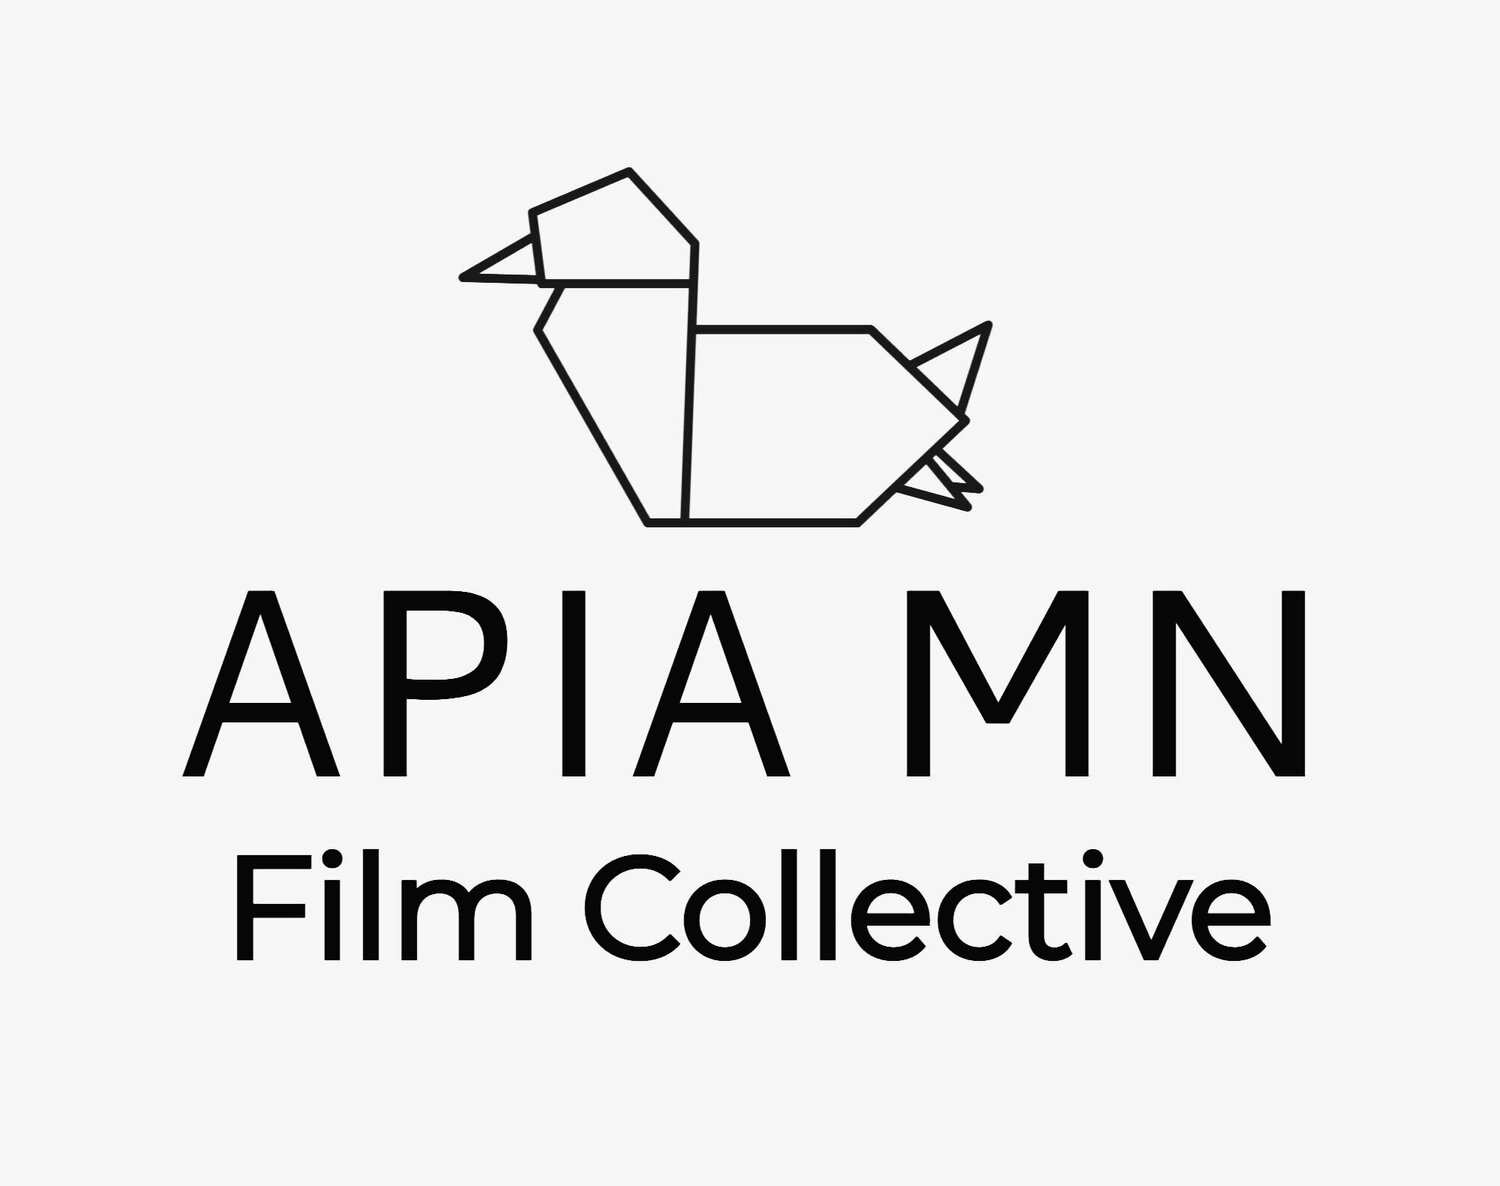 APIA MN Film Collective